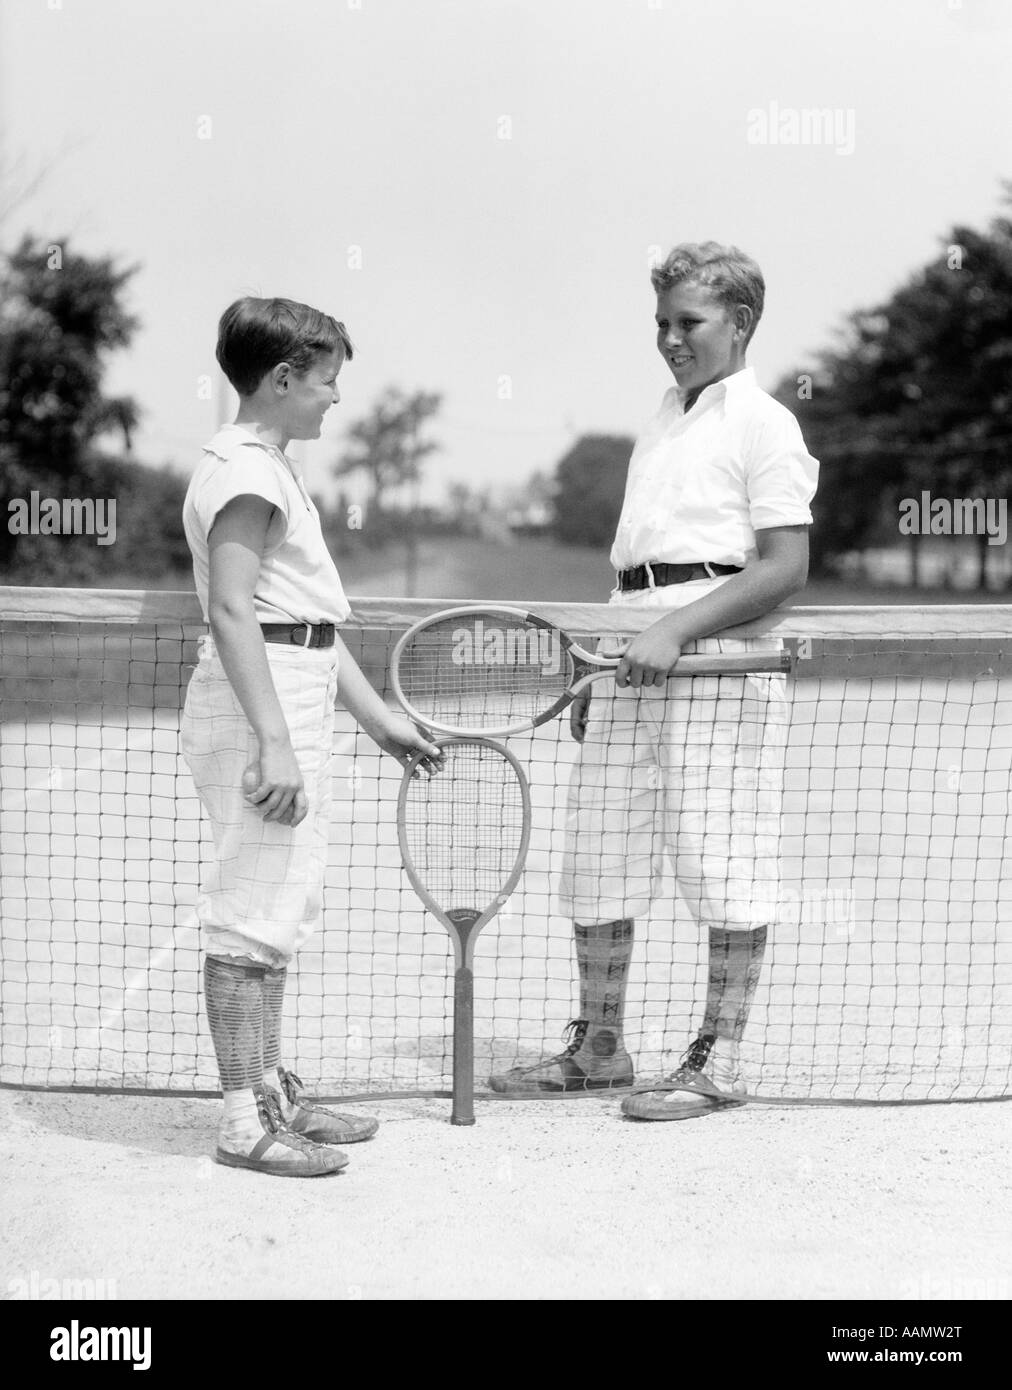 1920s 1930s TWO BOYS TENNIS MATCH HOLDING RACKETS MEASURING NET HEIGHT - Stock Image